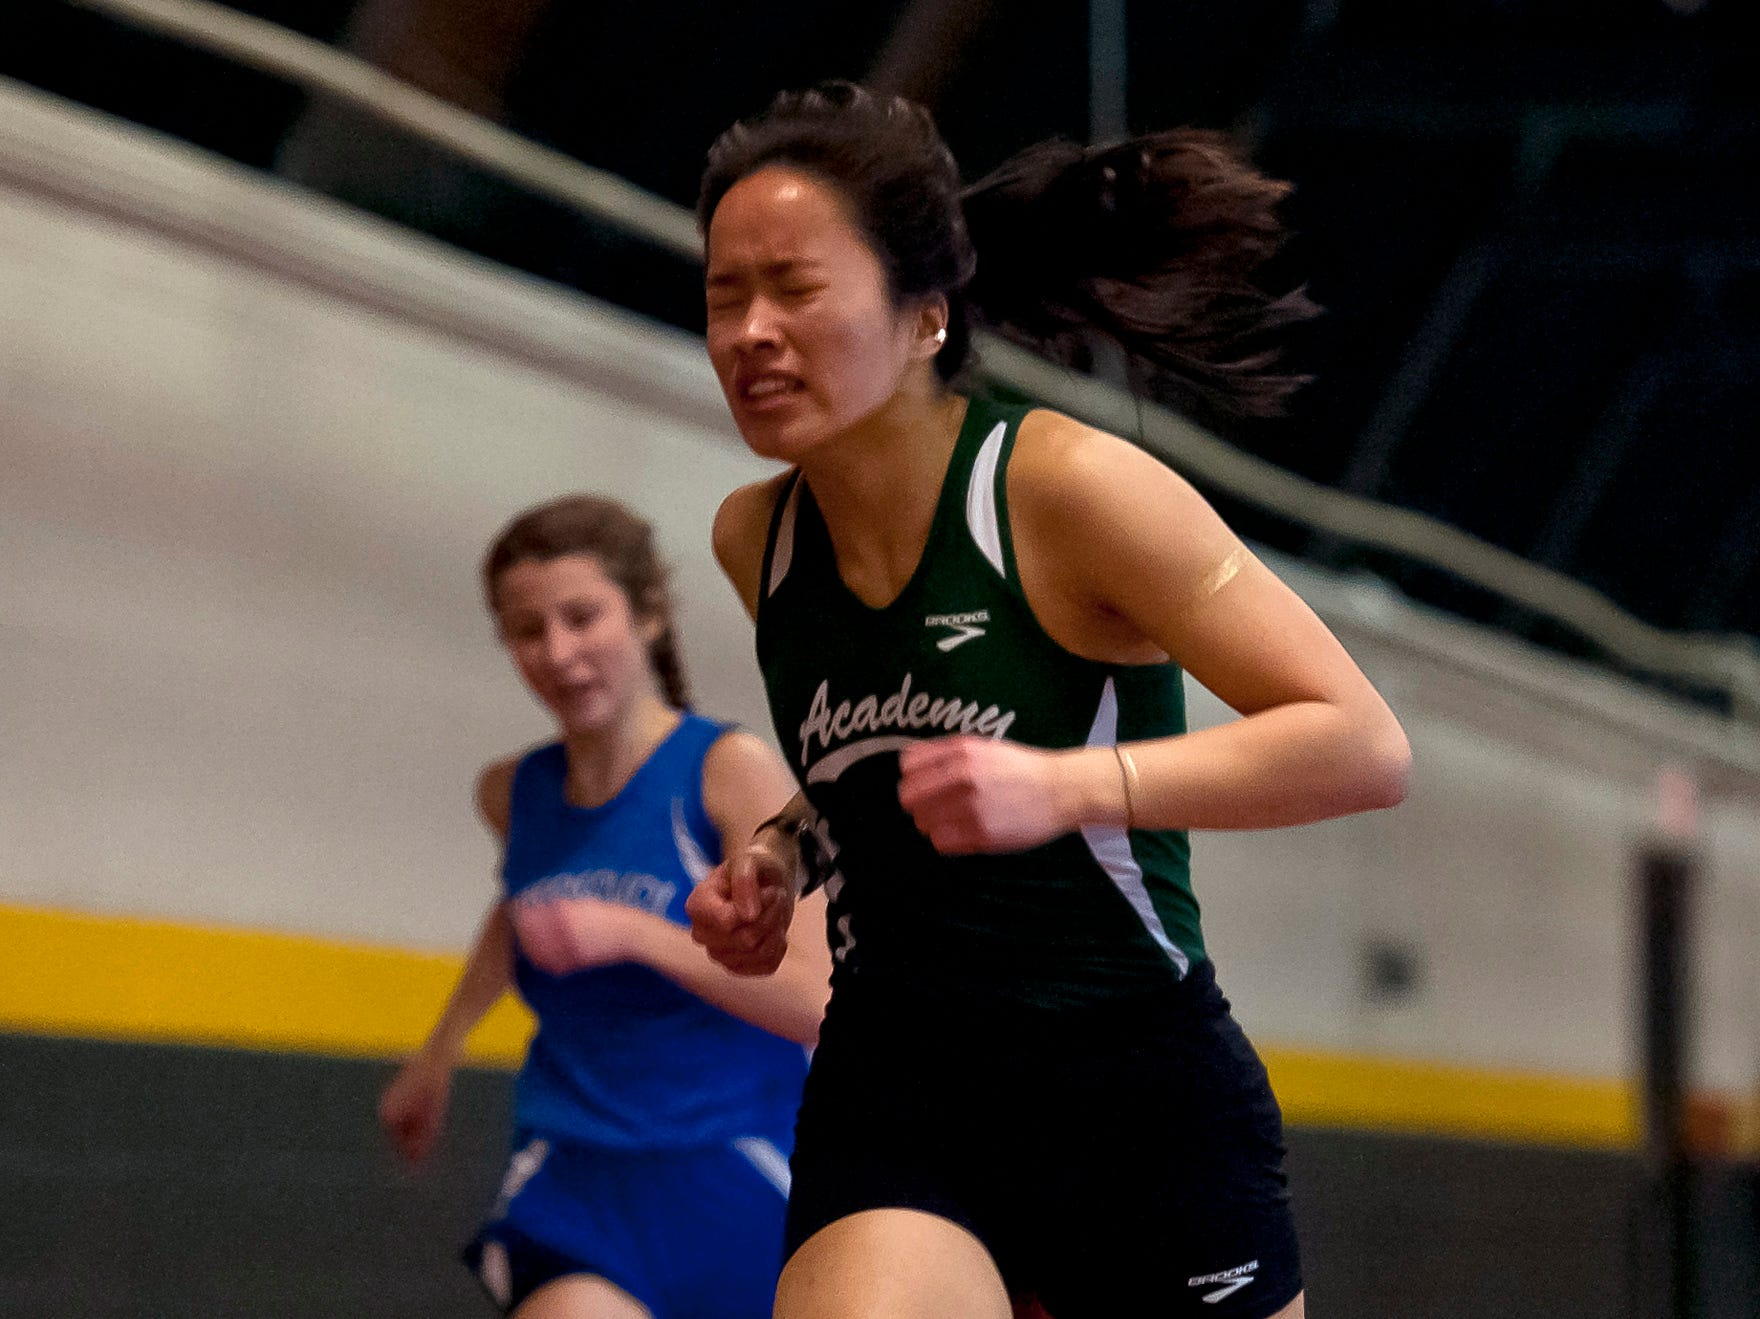 St. Johnsbury's Lia Rotti crosses the finish line in the girls 300 meters at the high school indoor track state championships at the University of Vermont on Saturday.